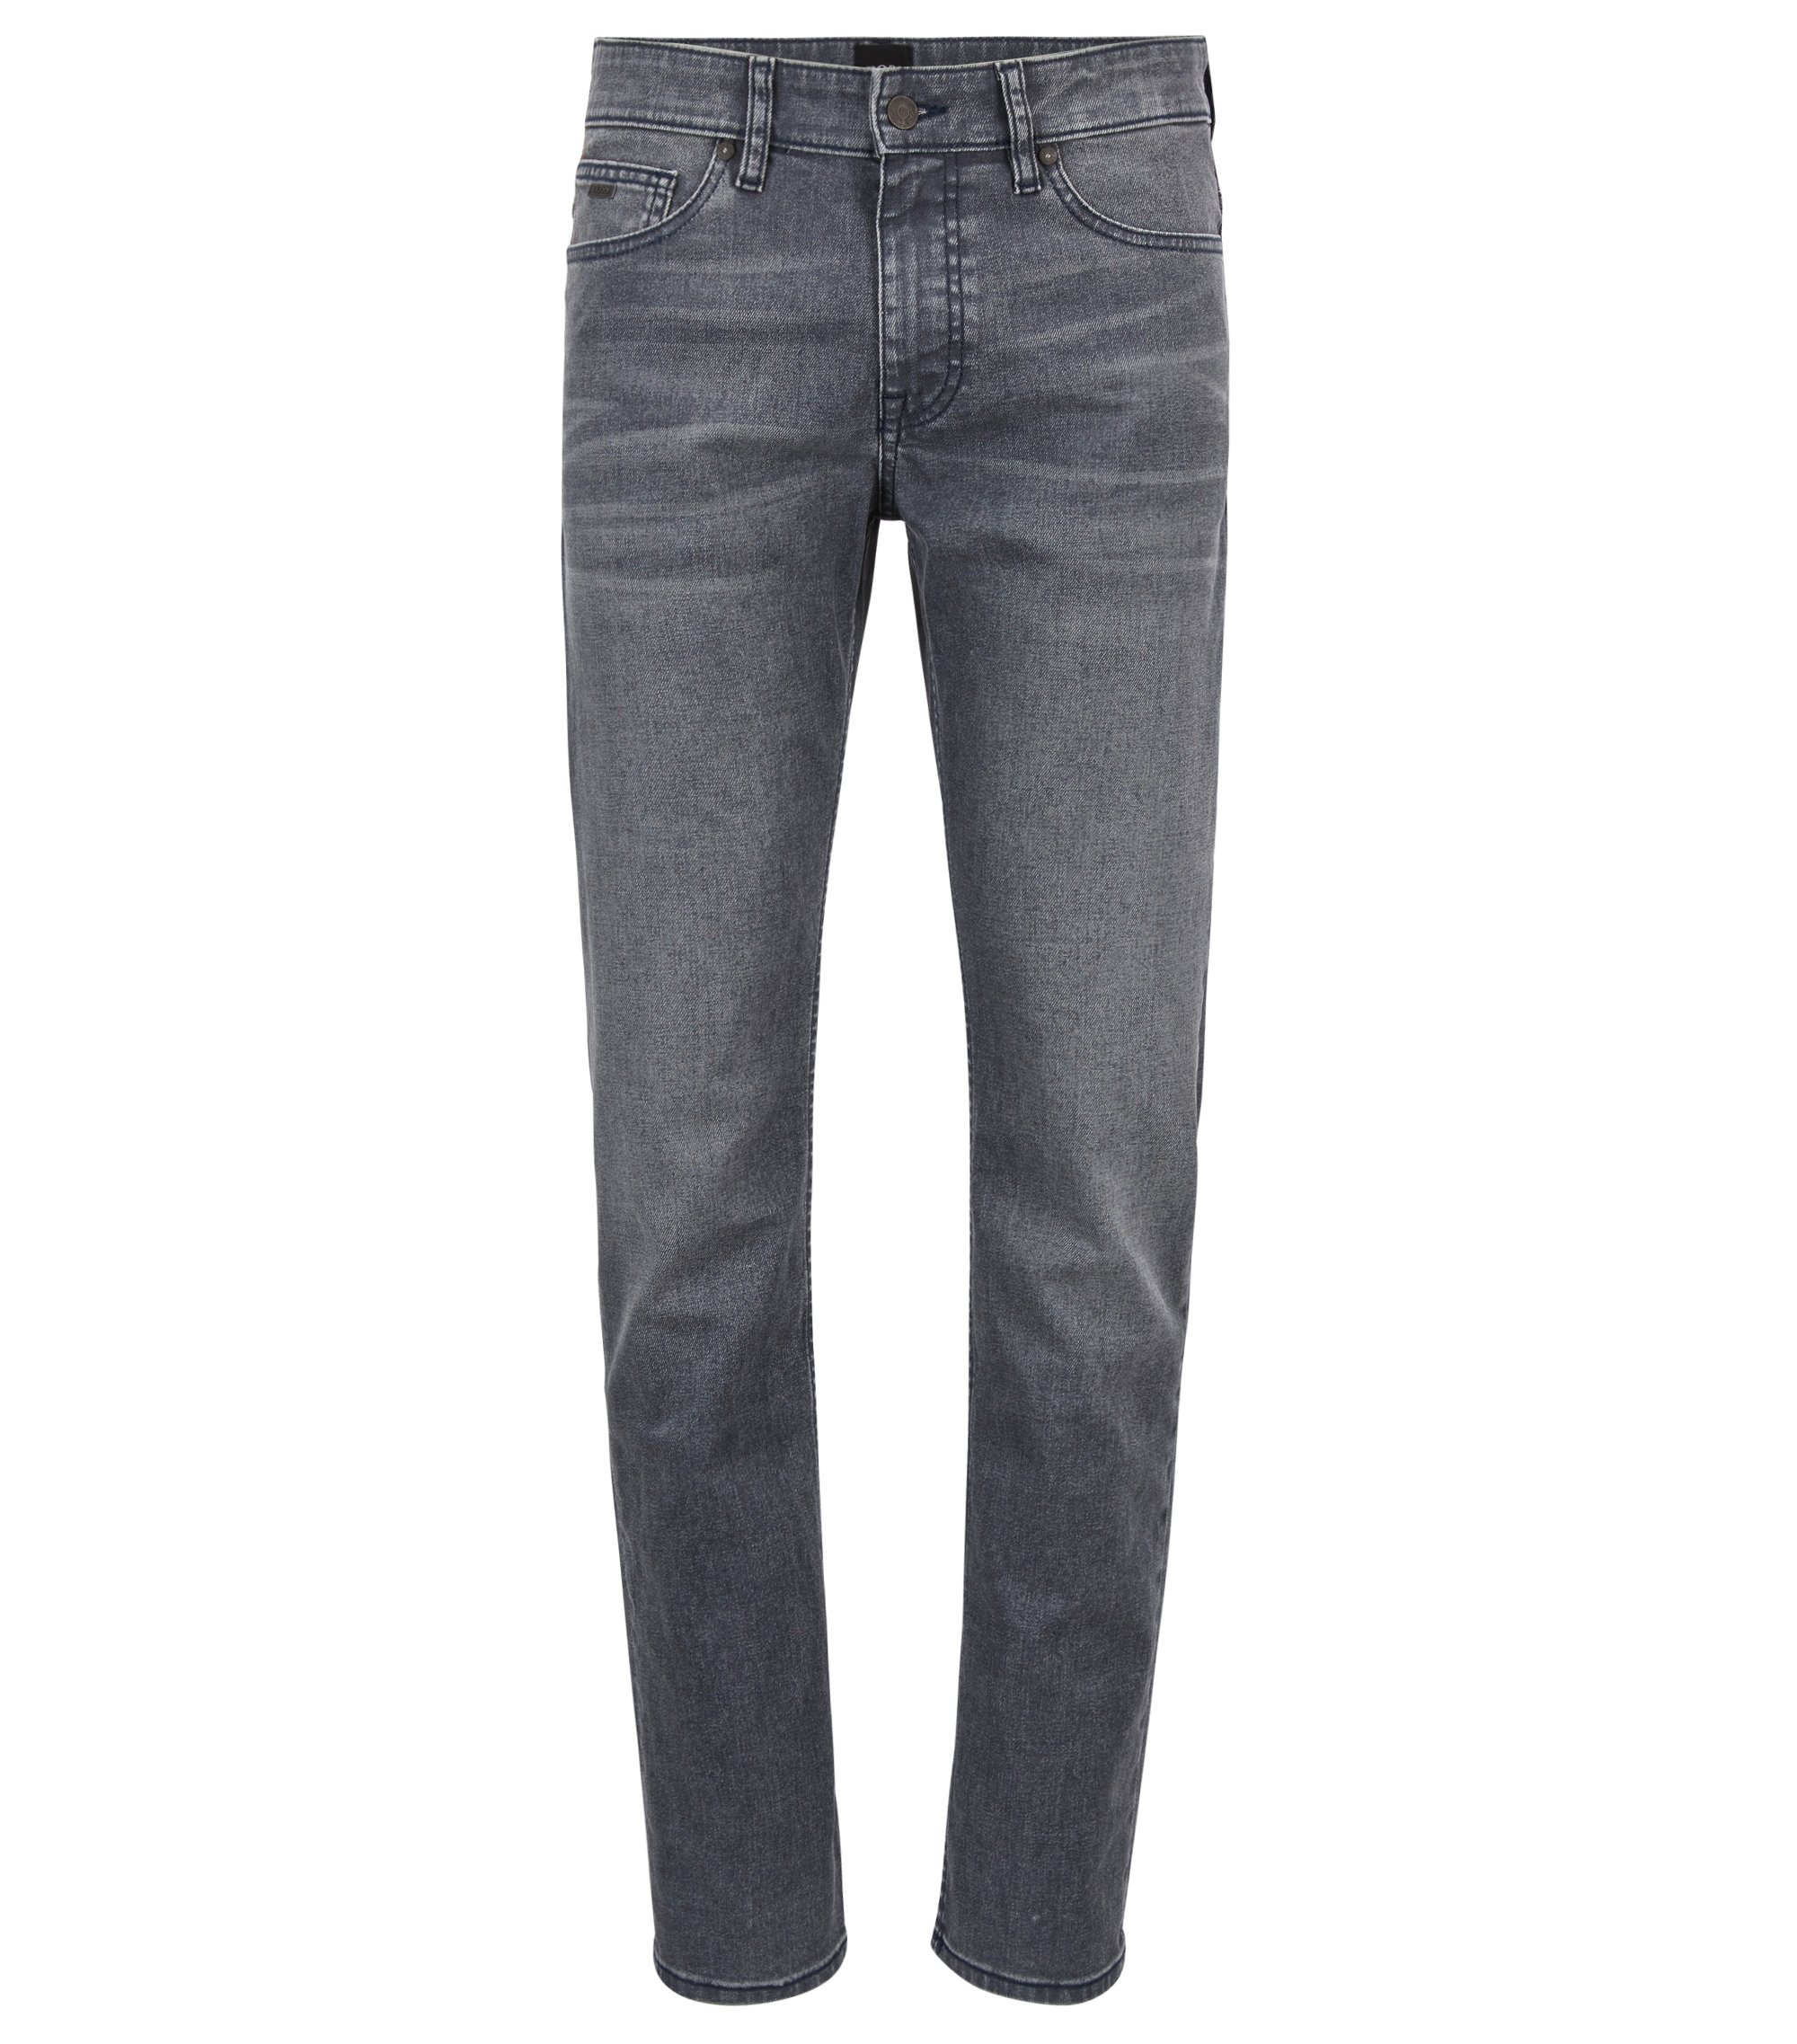 Jean Slim Fit en denim stretch enduit gris, Anthracite